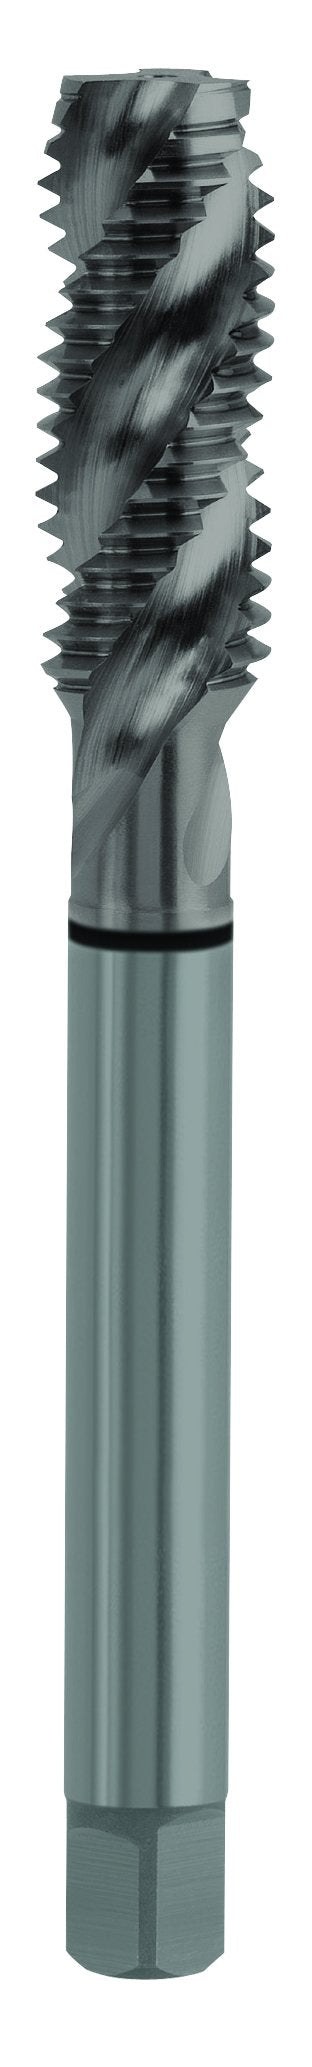 3FL SPIRAL POINTED STEAM OXIDE COMBO TAP M16 X 1.5, D6